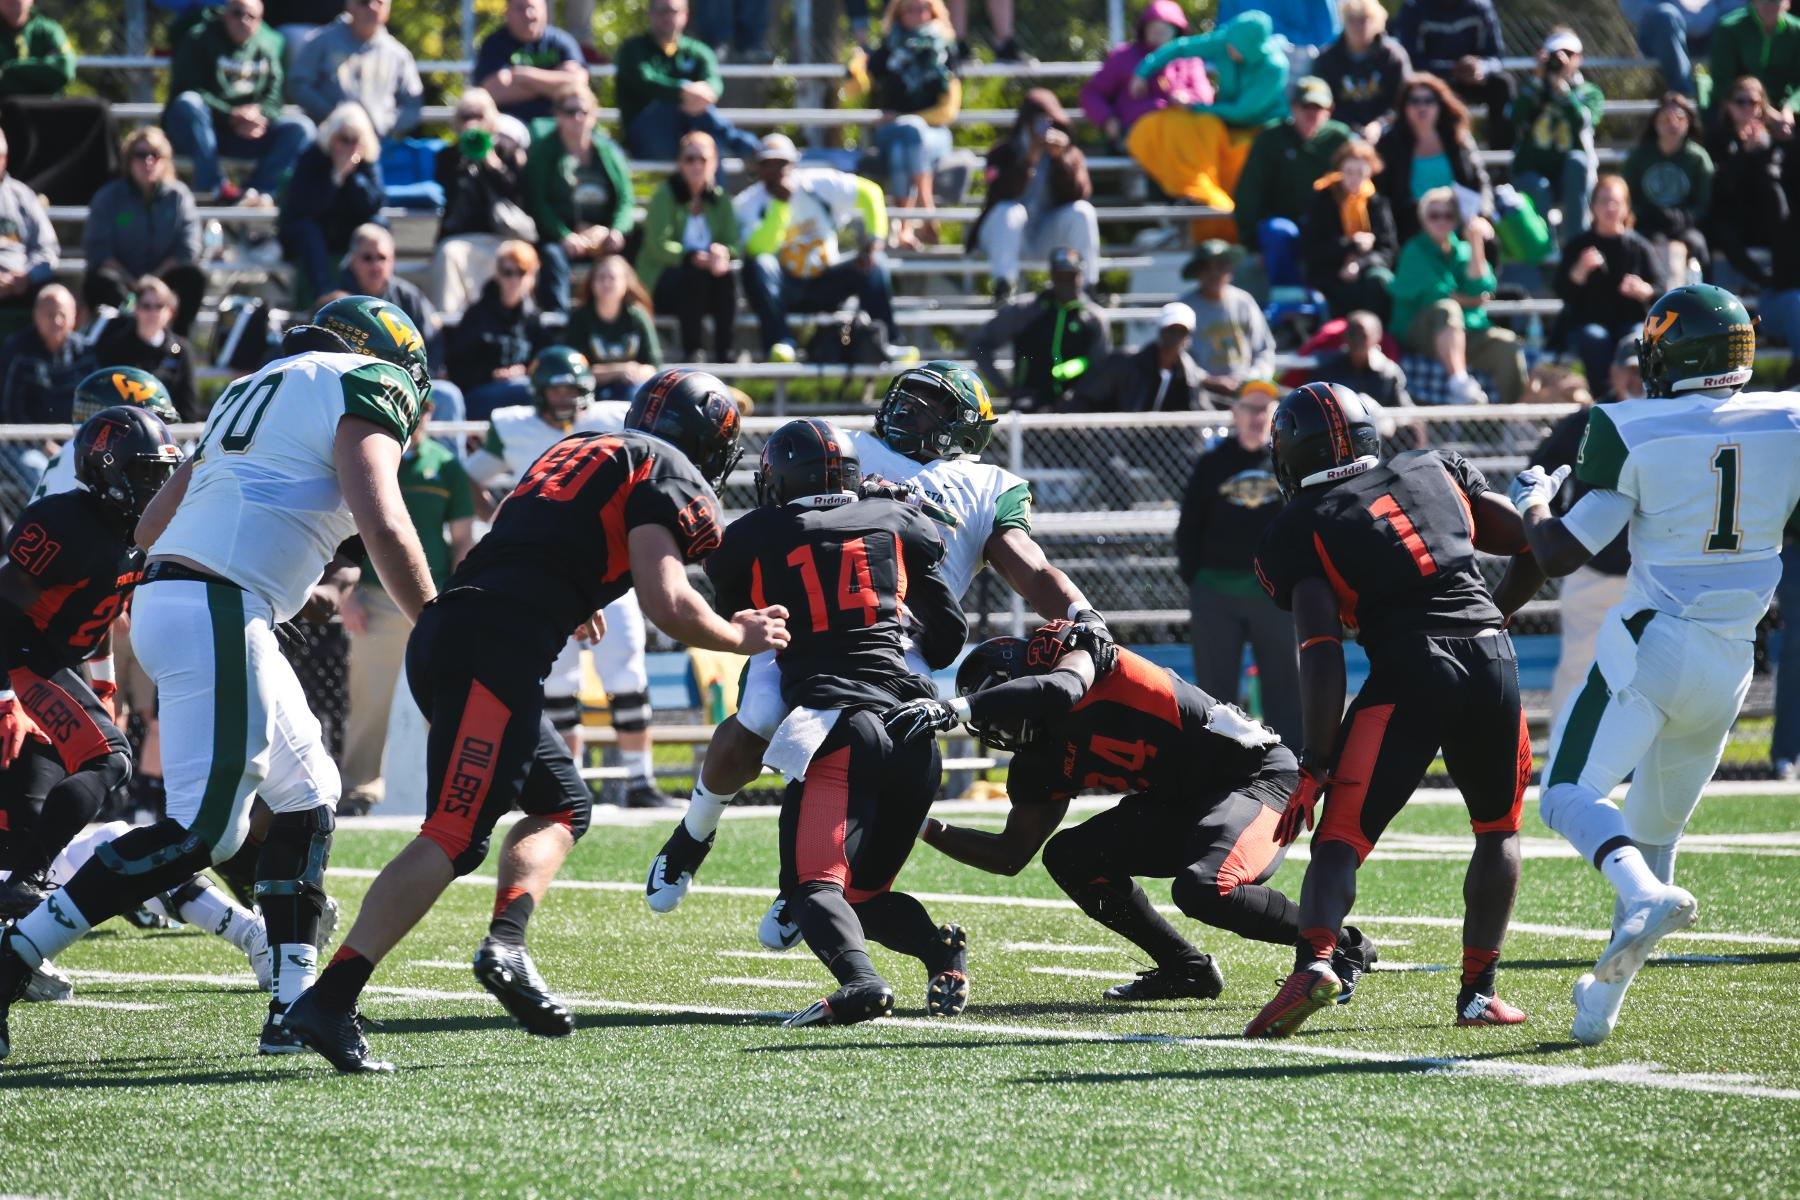 Records Broken in Loss to Wayne State